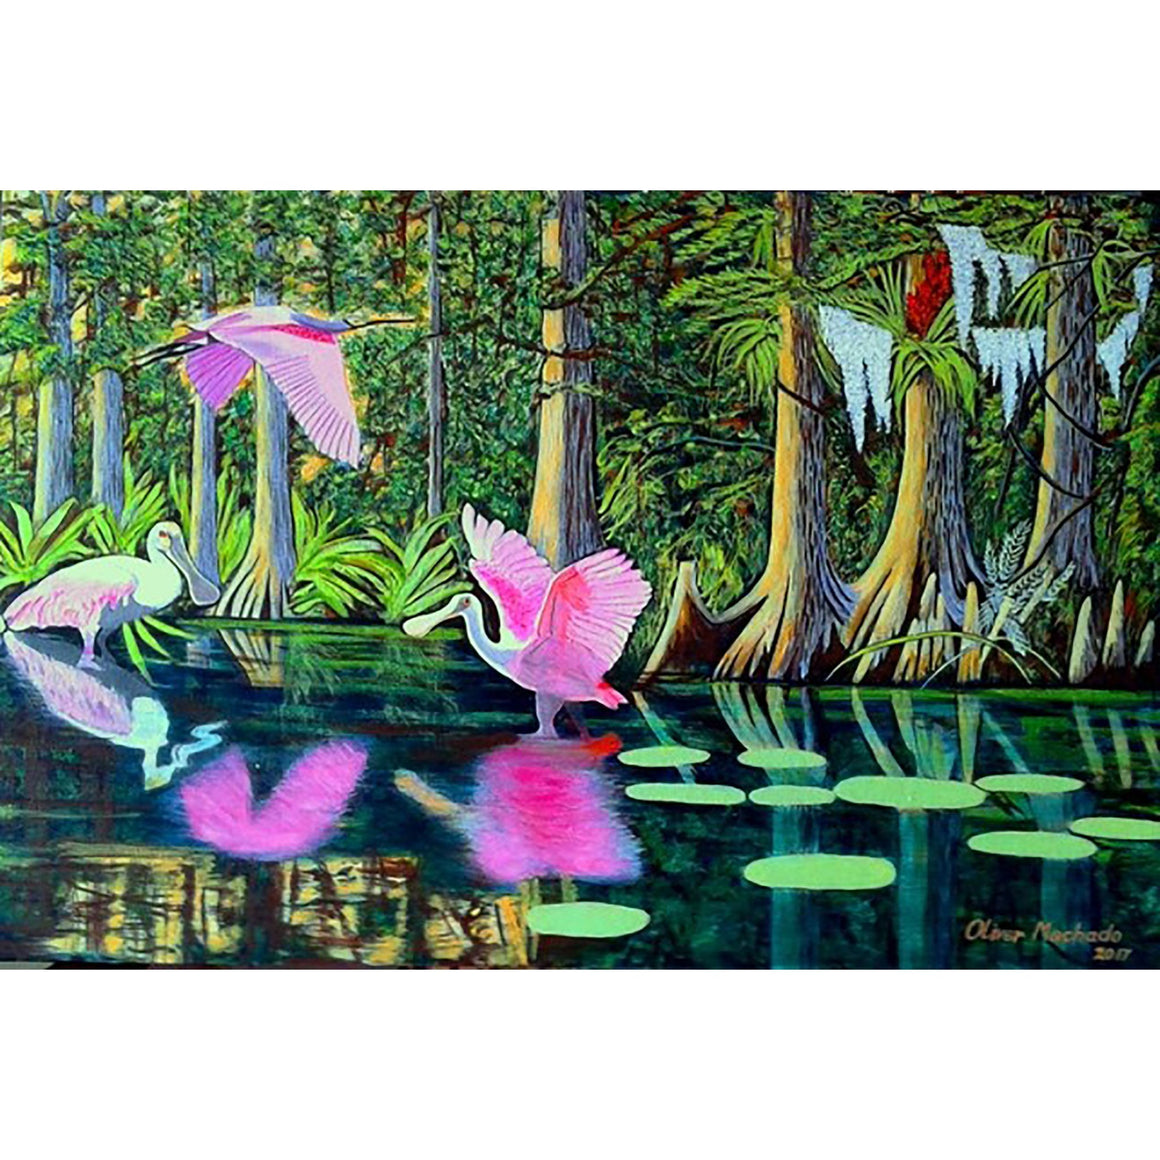 3 flamingos playing on the river